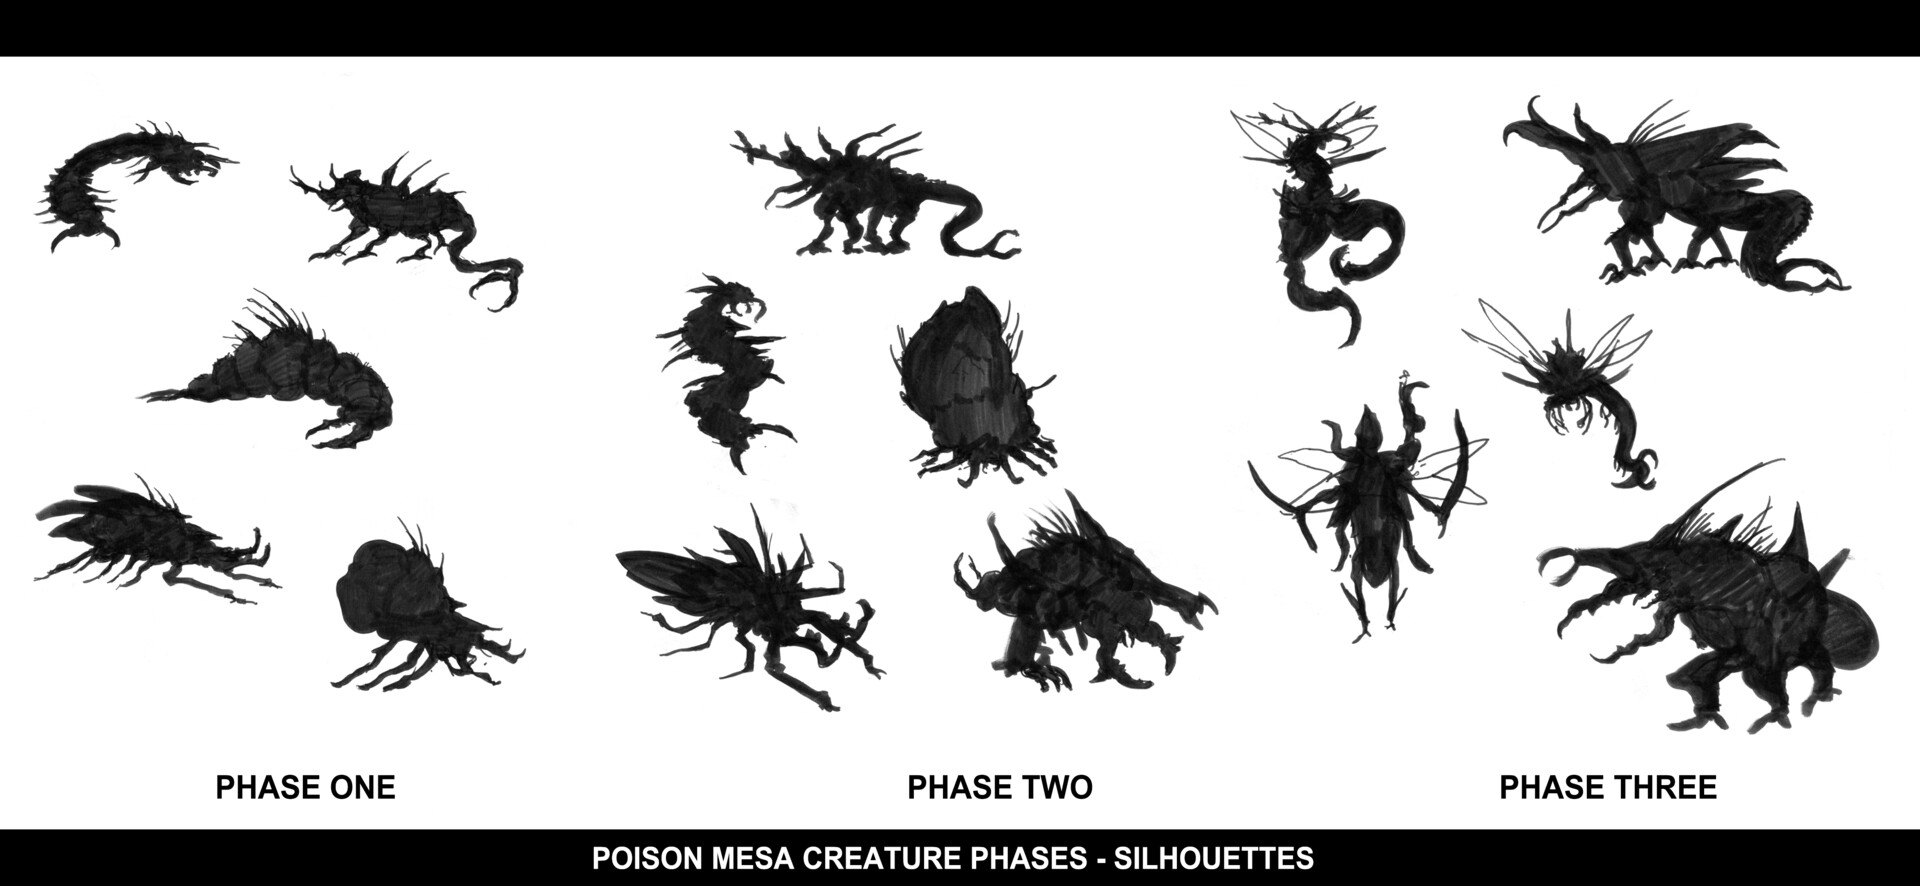 Christian herman pm creature phases silhouettes compiled